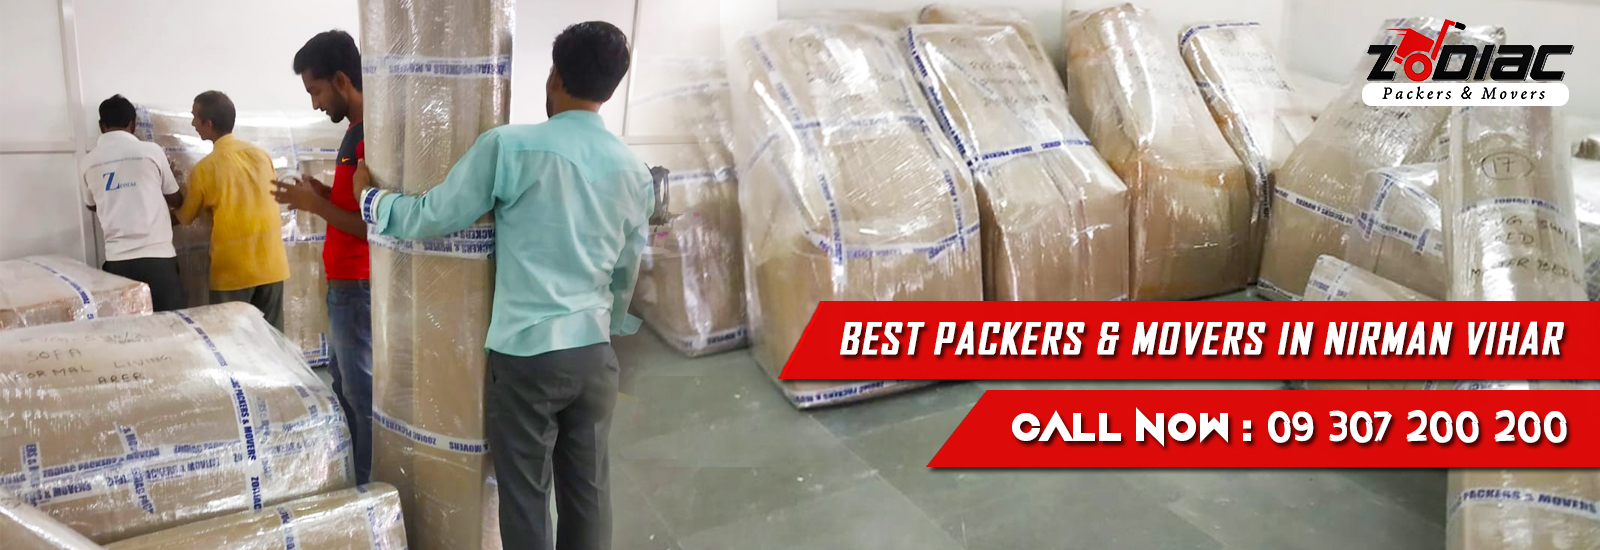 Packers and Movers in Nirman Vihar